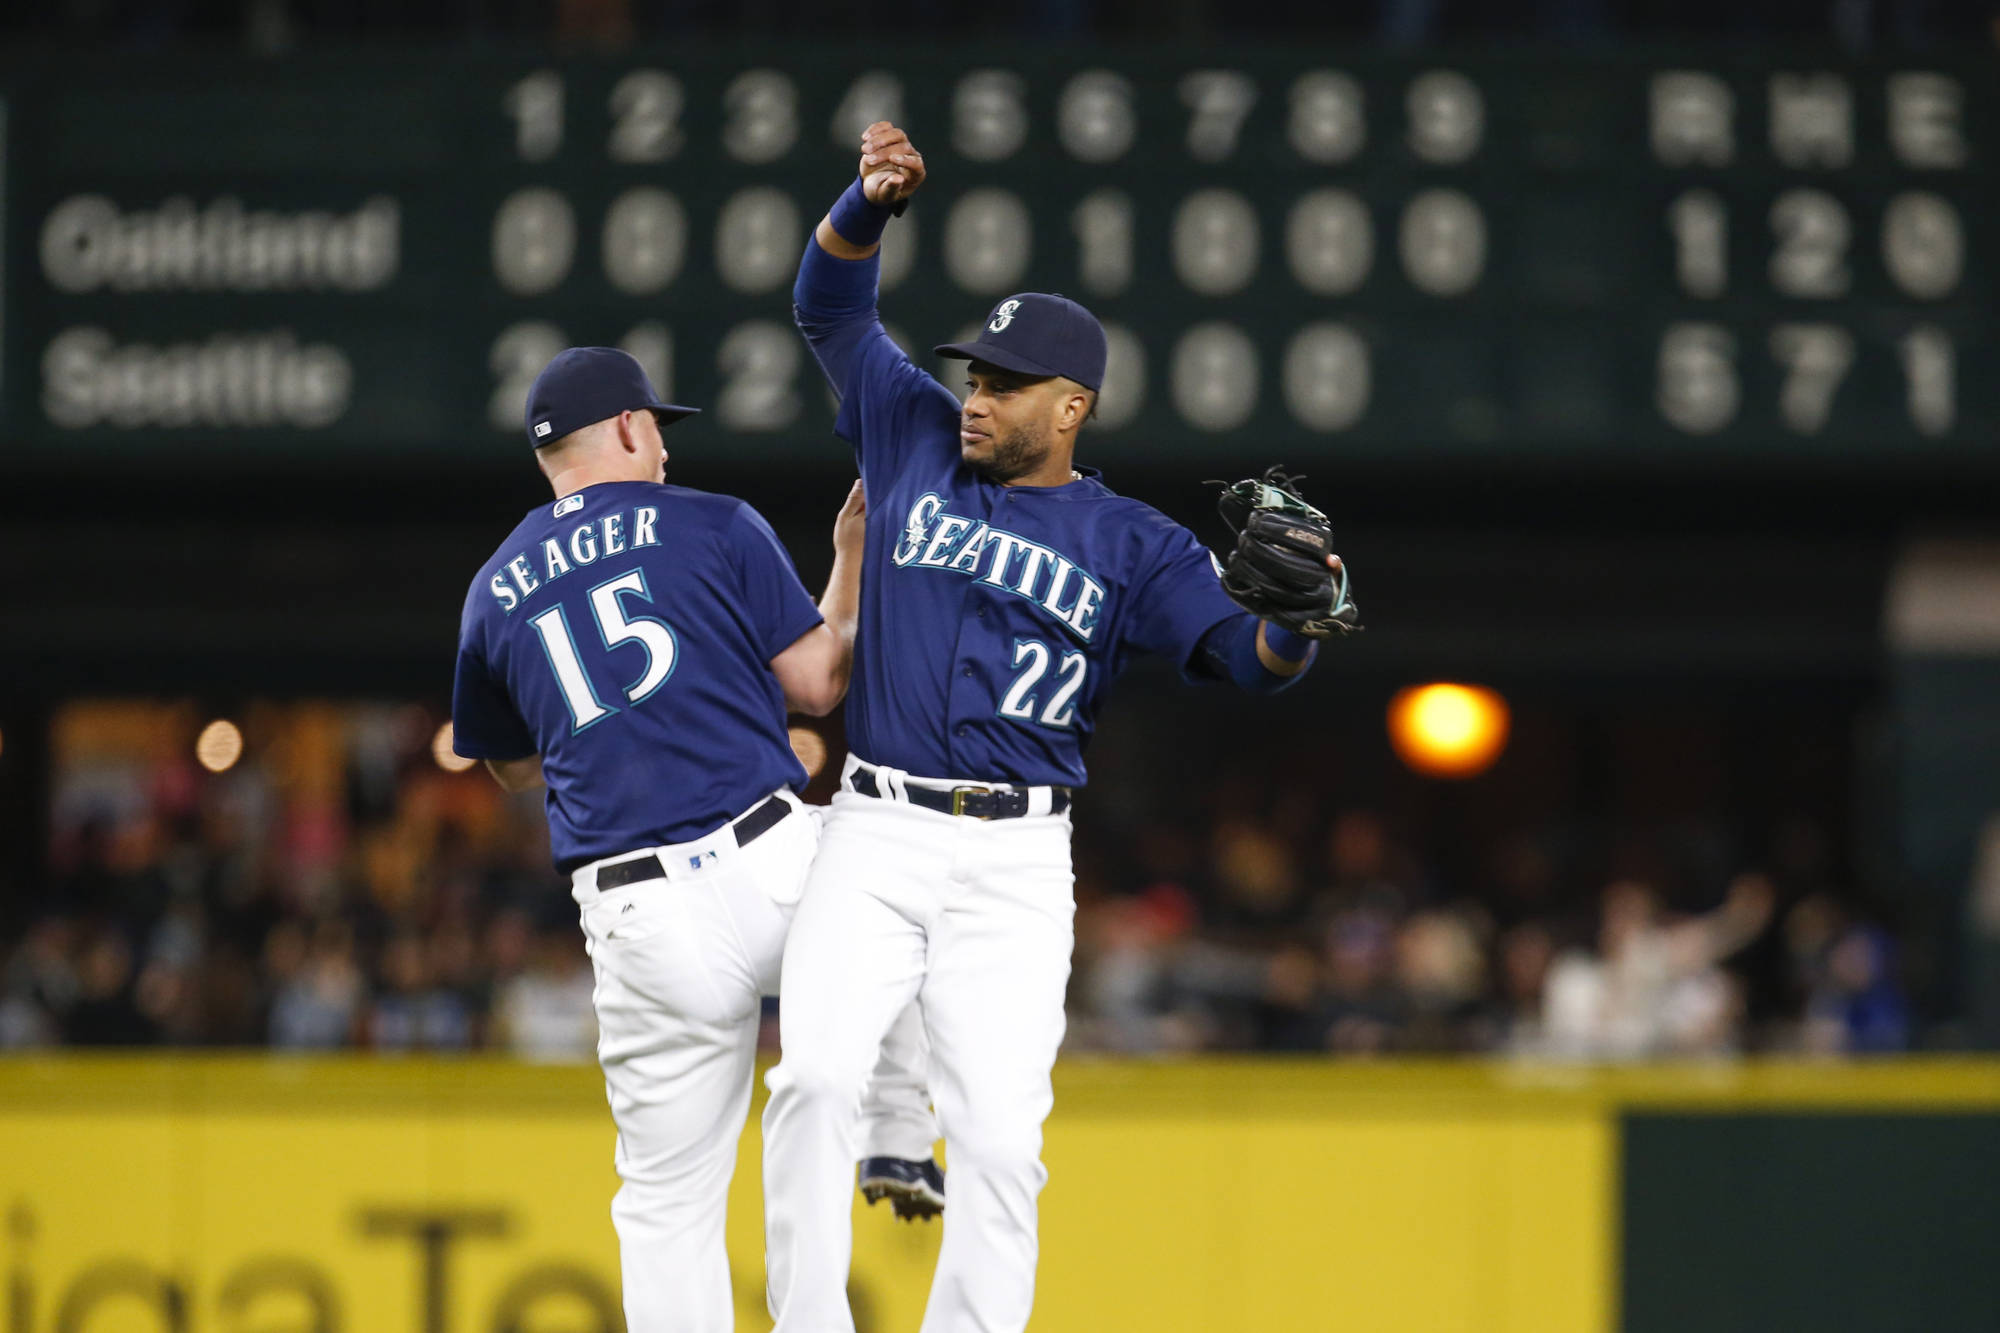 Examining the Mariners Lineup in More Depth